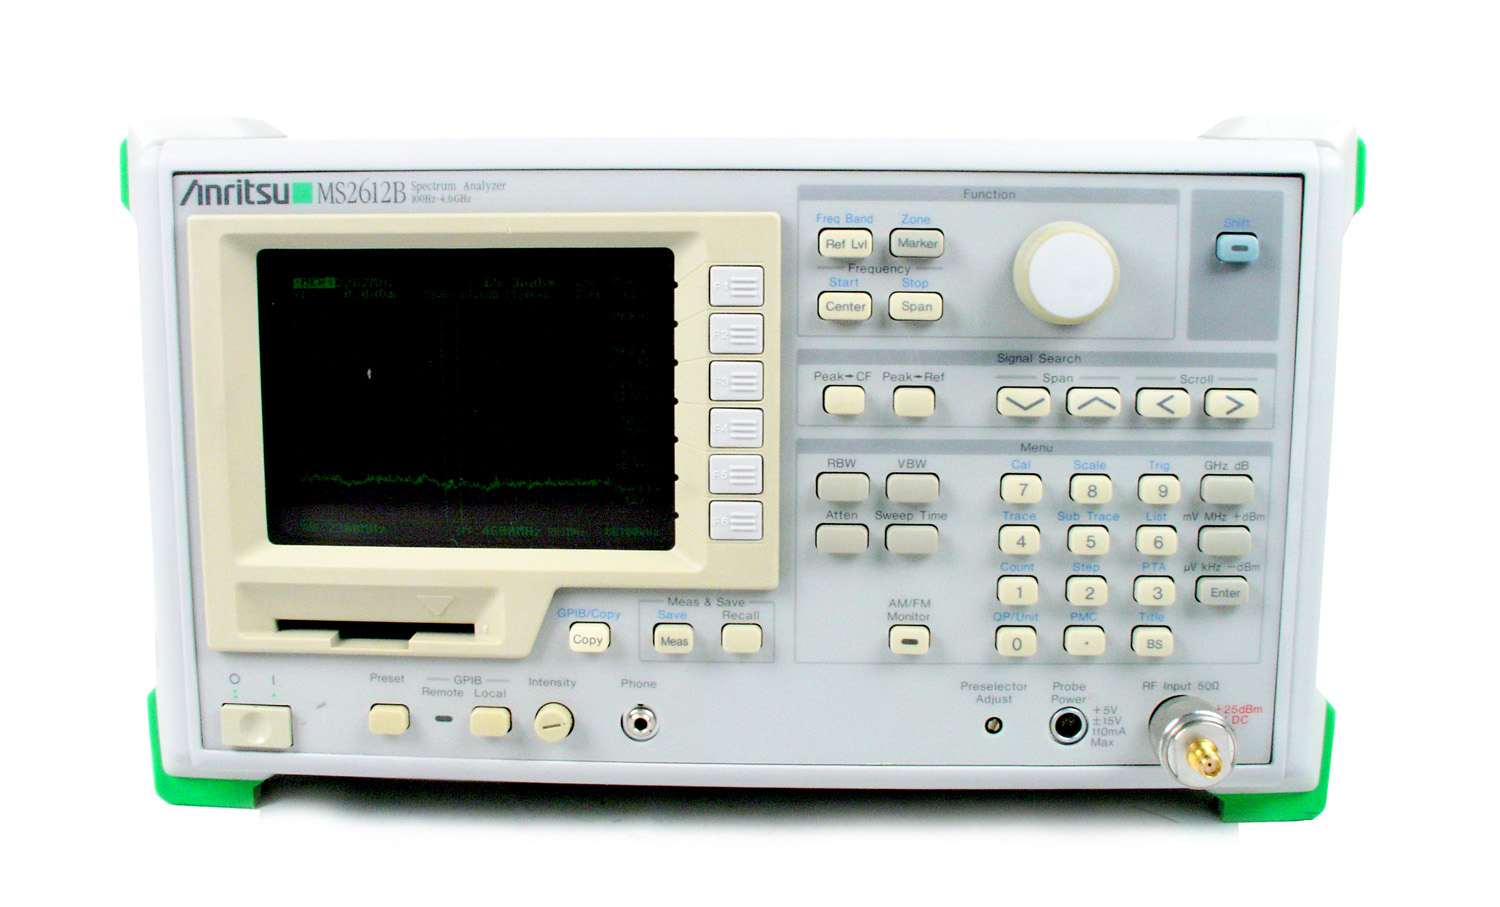 Anritsu MS2612B for sale